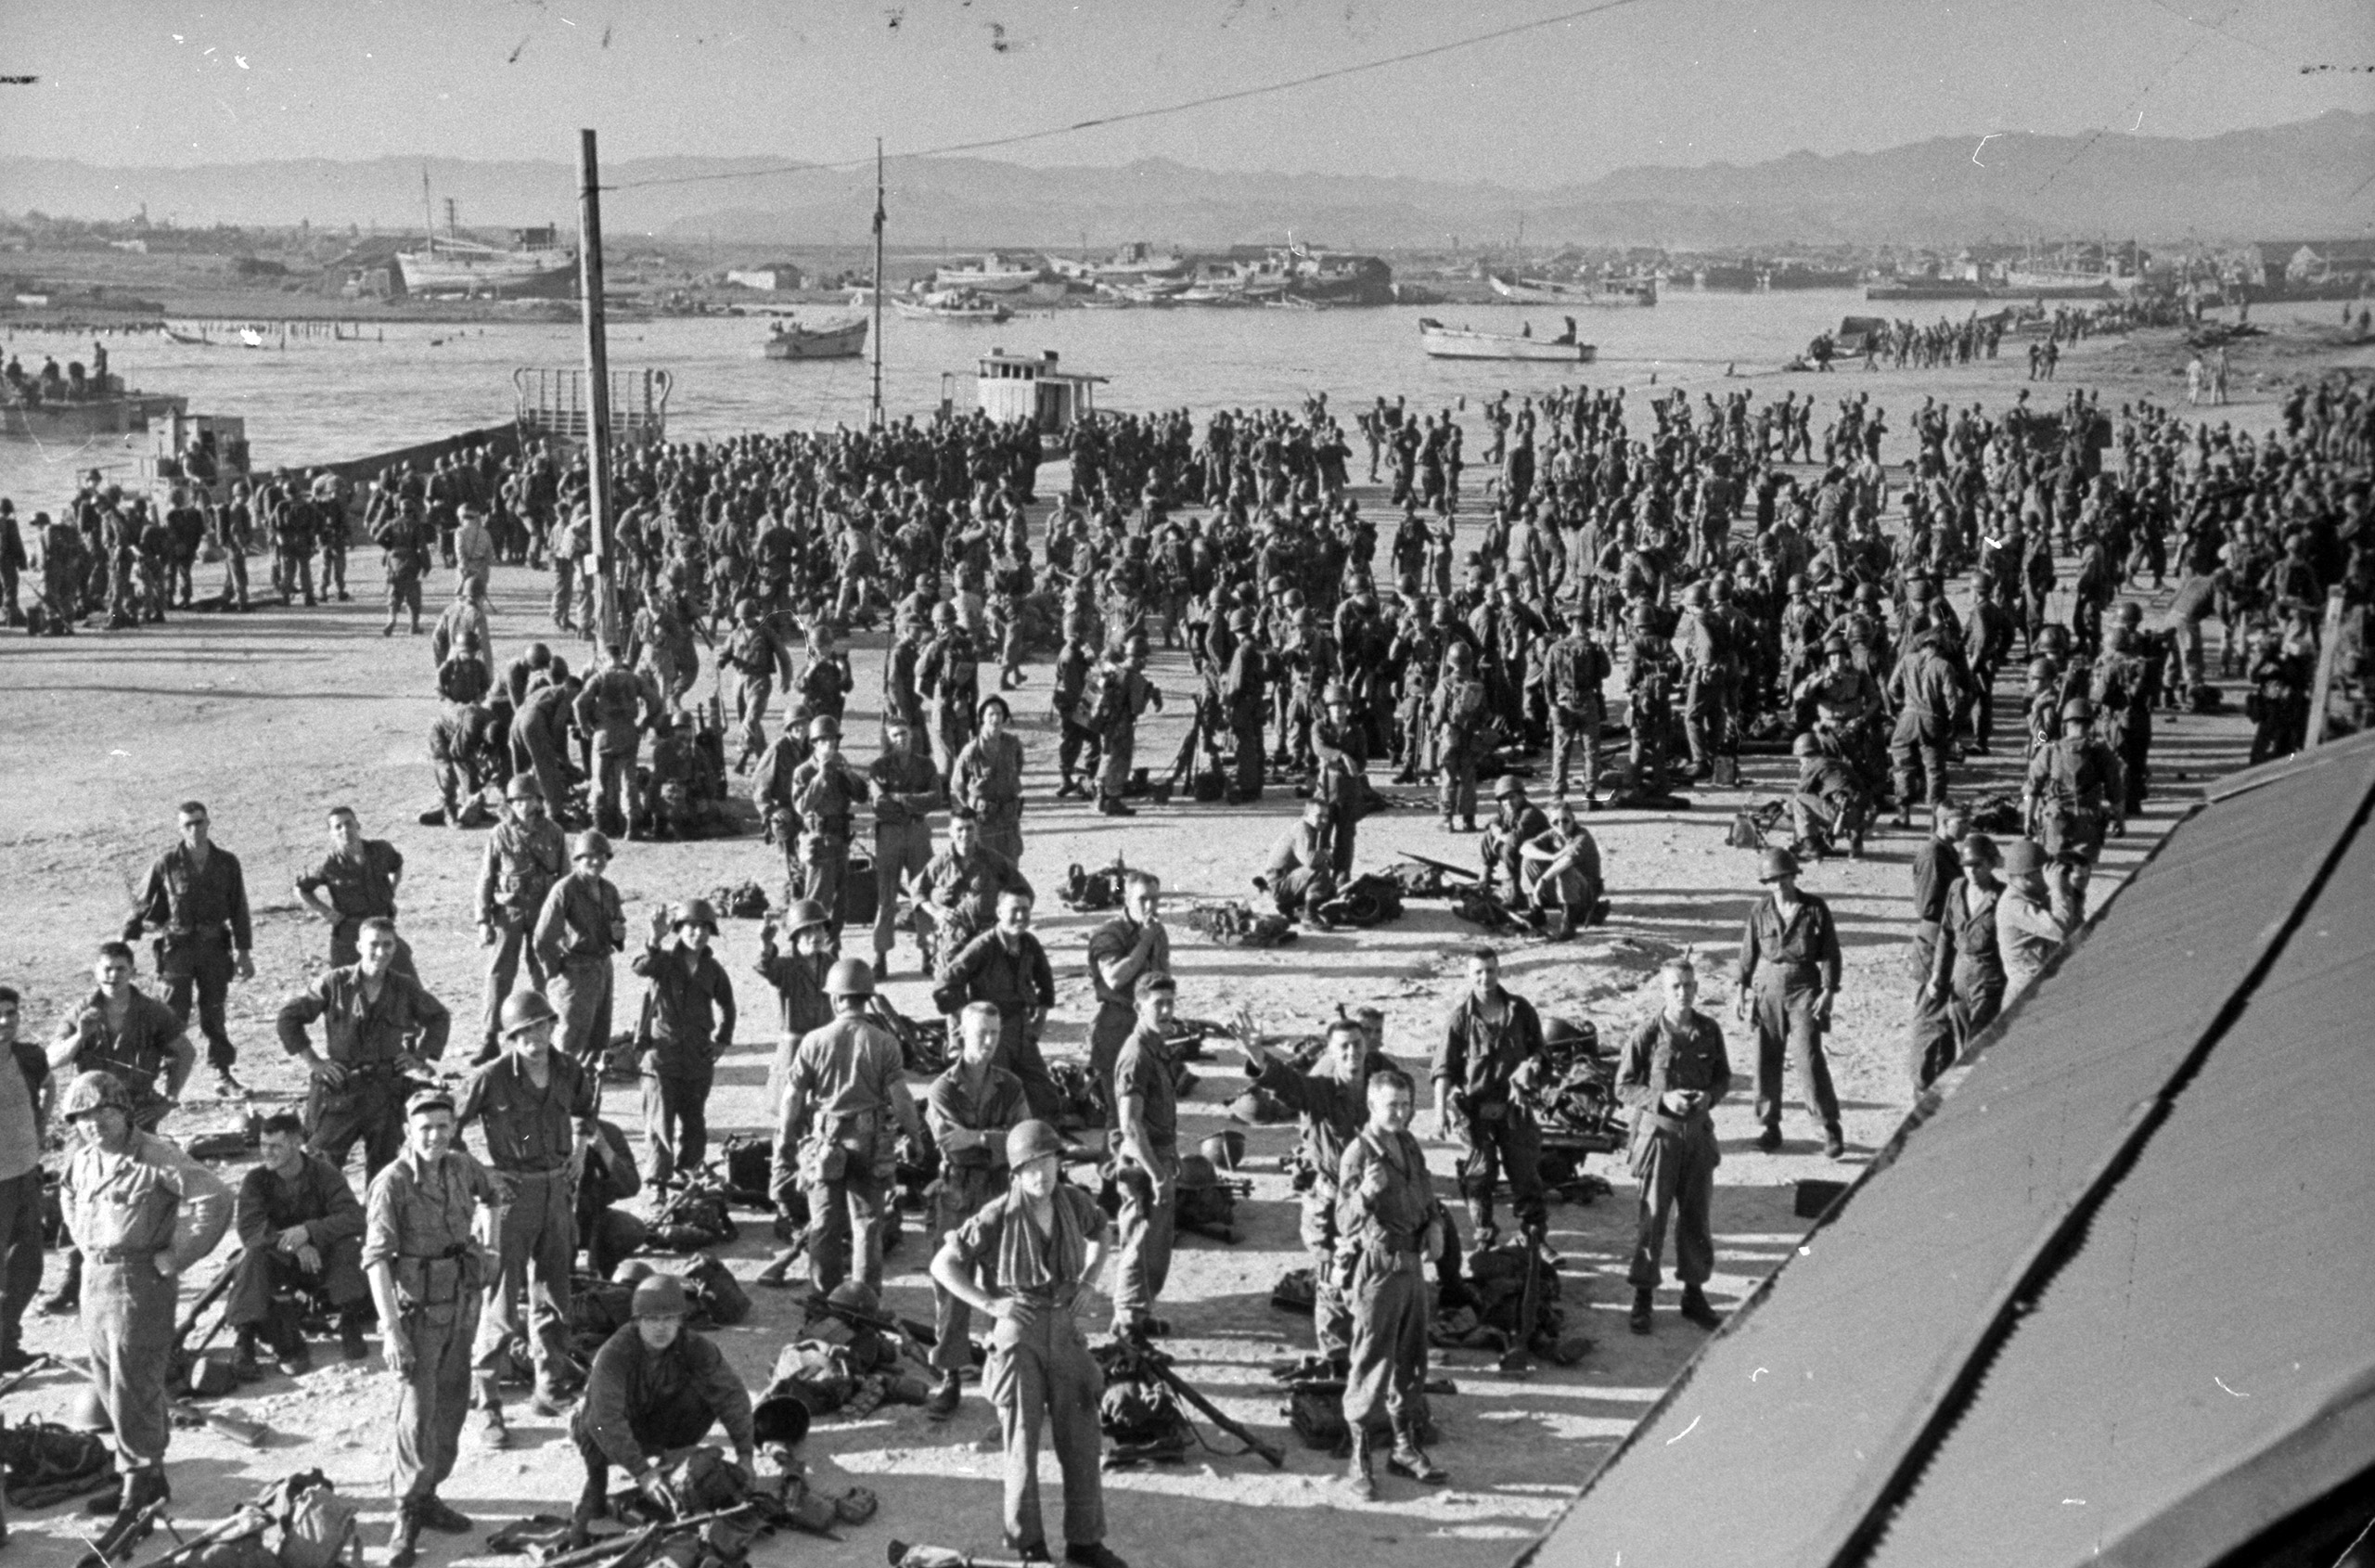 Newly arrived troops gathering at the beach awaiting orders to move further inland.